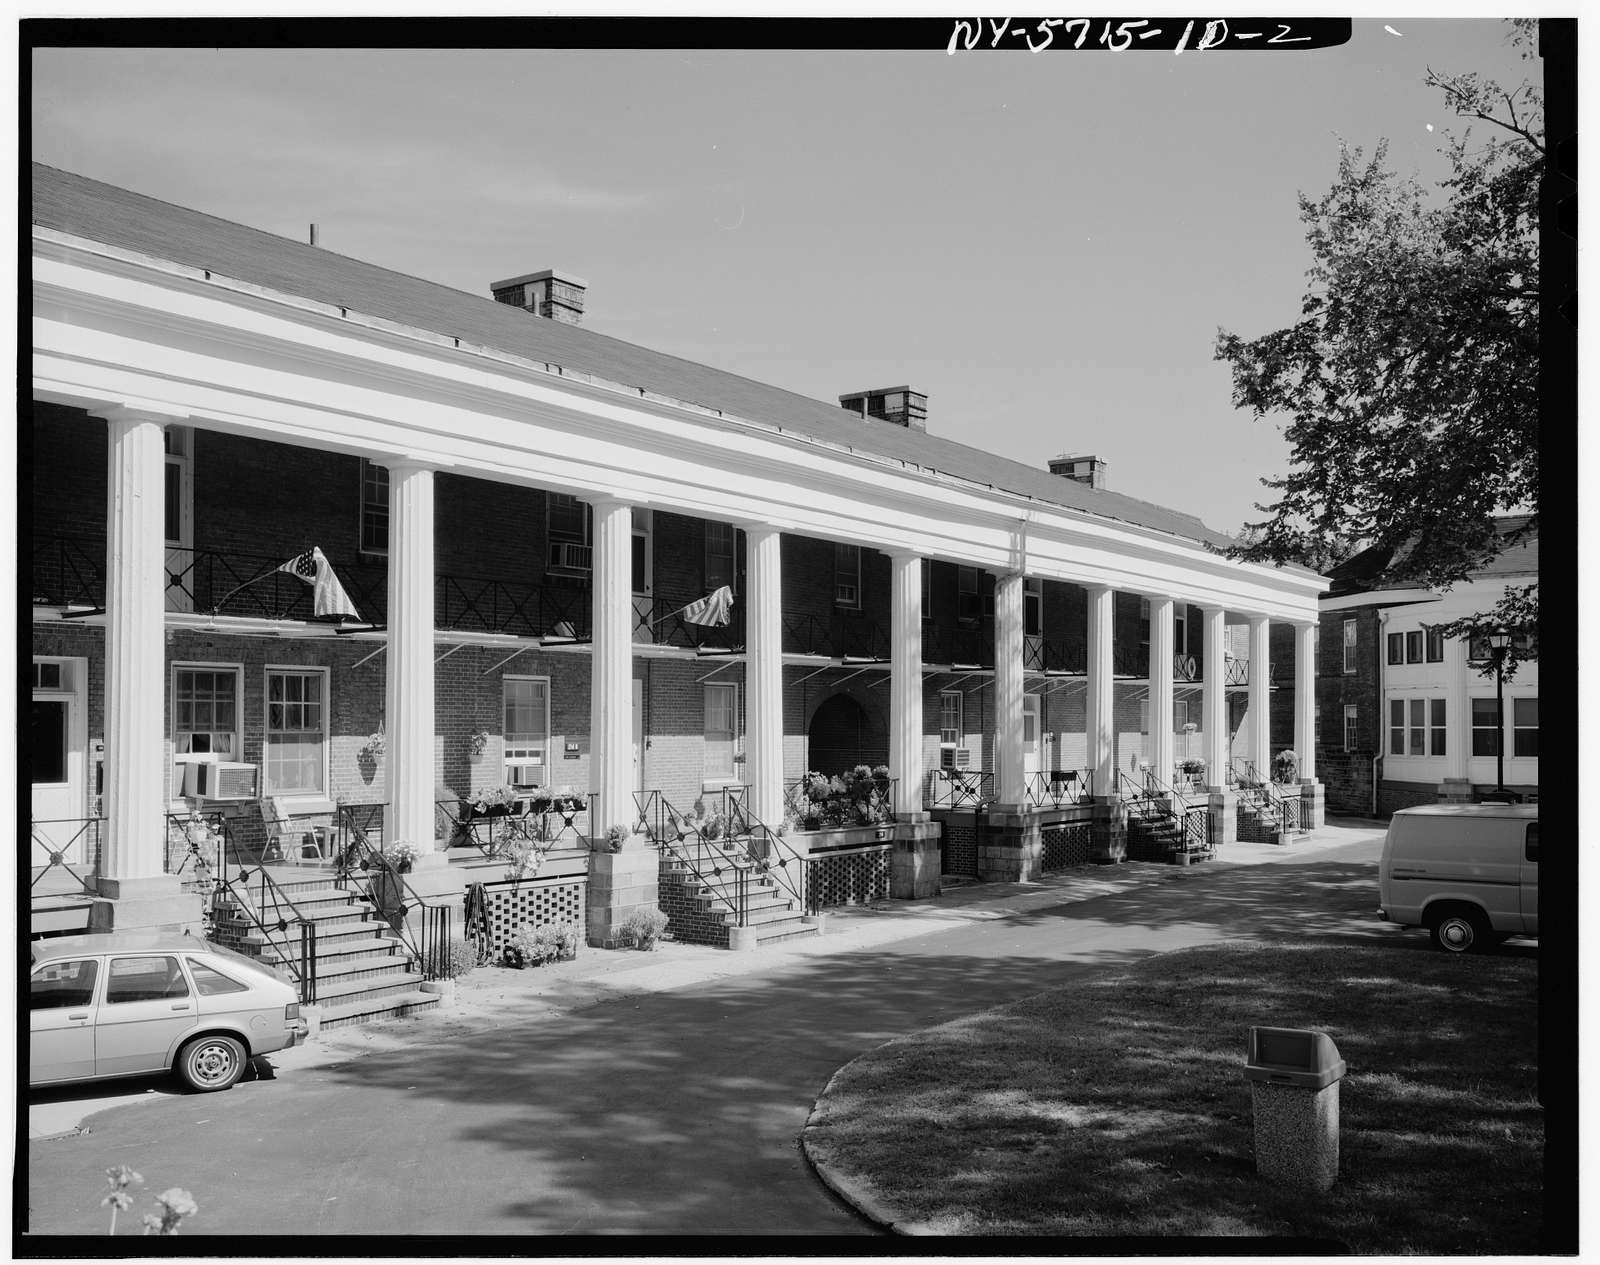 Governors Island, Fort Columbus, Building No. 214, New York Harbor, New York, New York County, NY